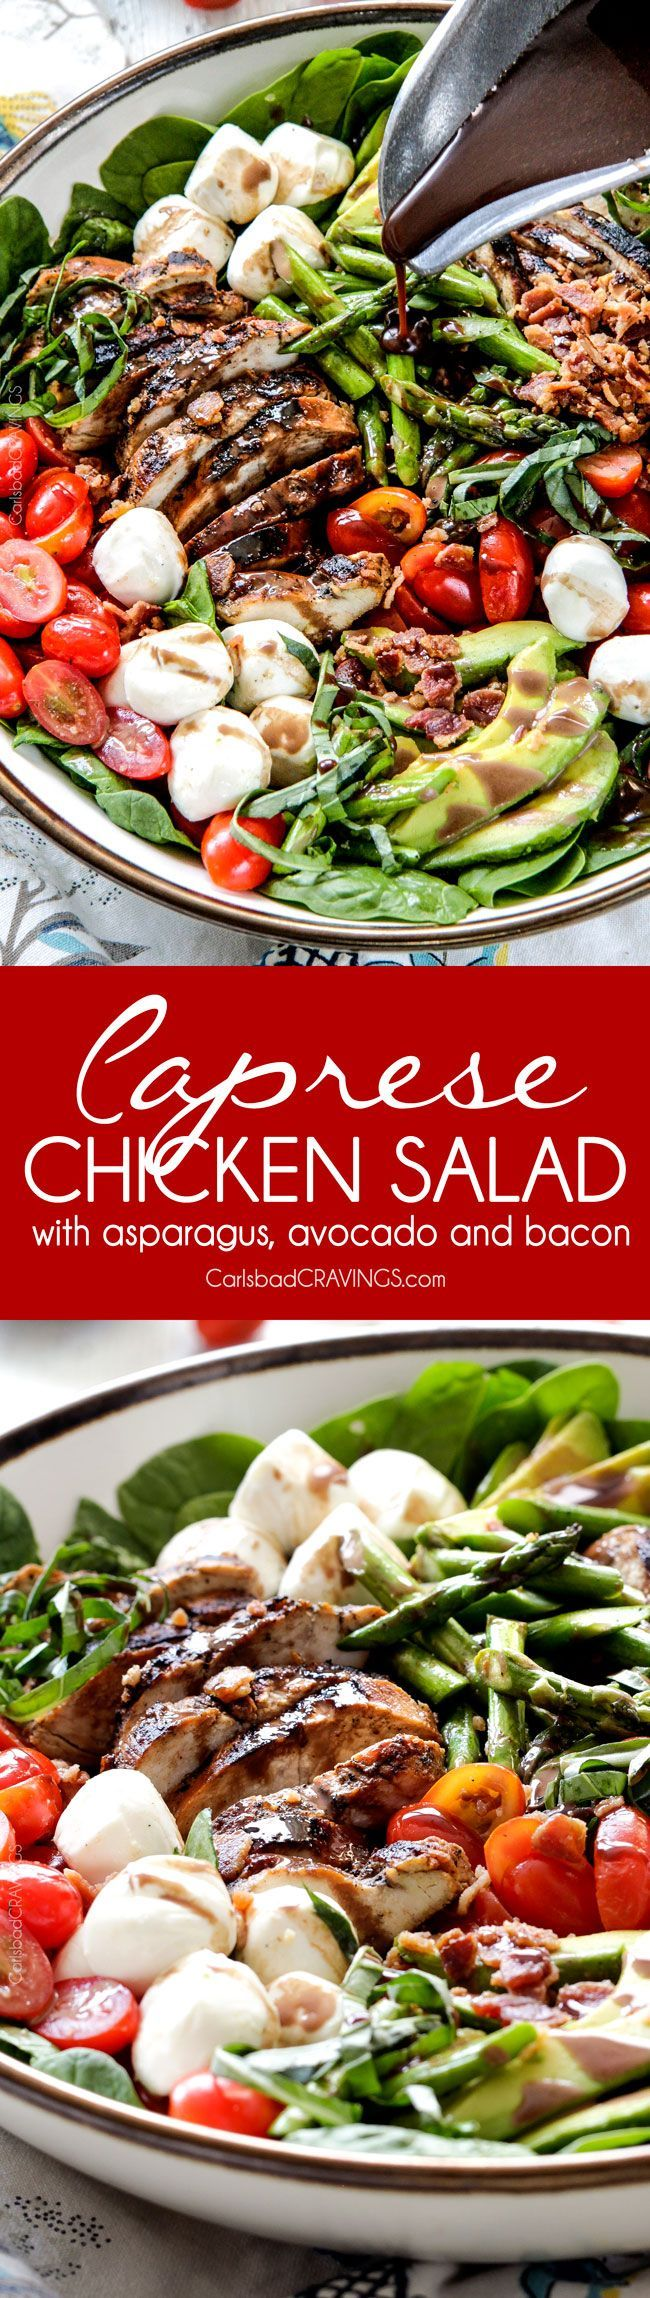 Grilled Caprese Chicken Salad with the most incredible balsamic marinated chicken, fresh tomatoes, creamy mozzarella, grilled asparagus, creamy avocado and crispy bacon all drizzled with Creamy Balsamic Reduction Dressing. Out of this world! #summersalad #springsalad #ad: